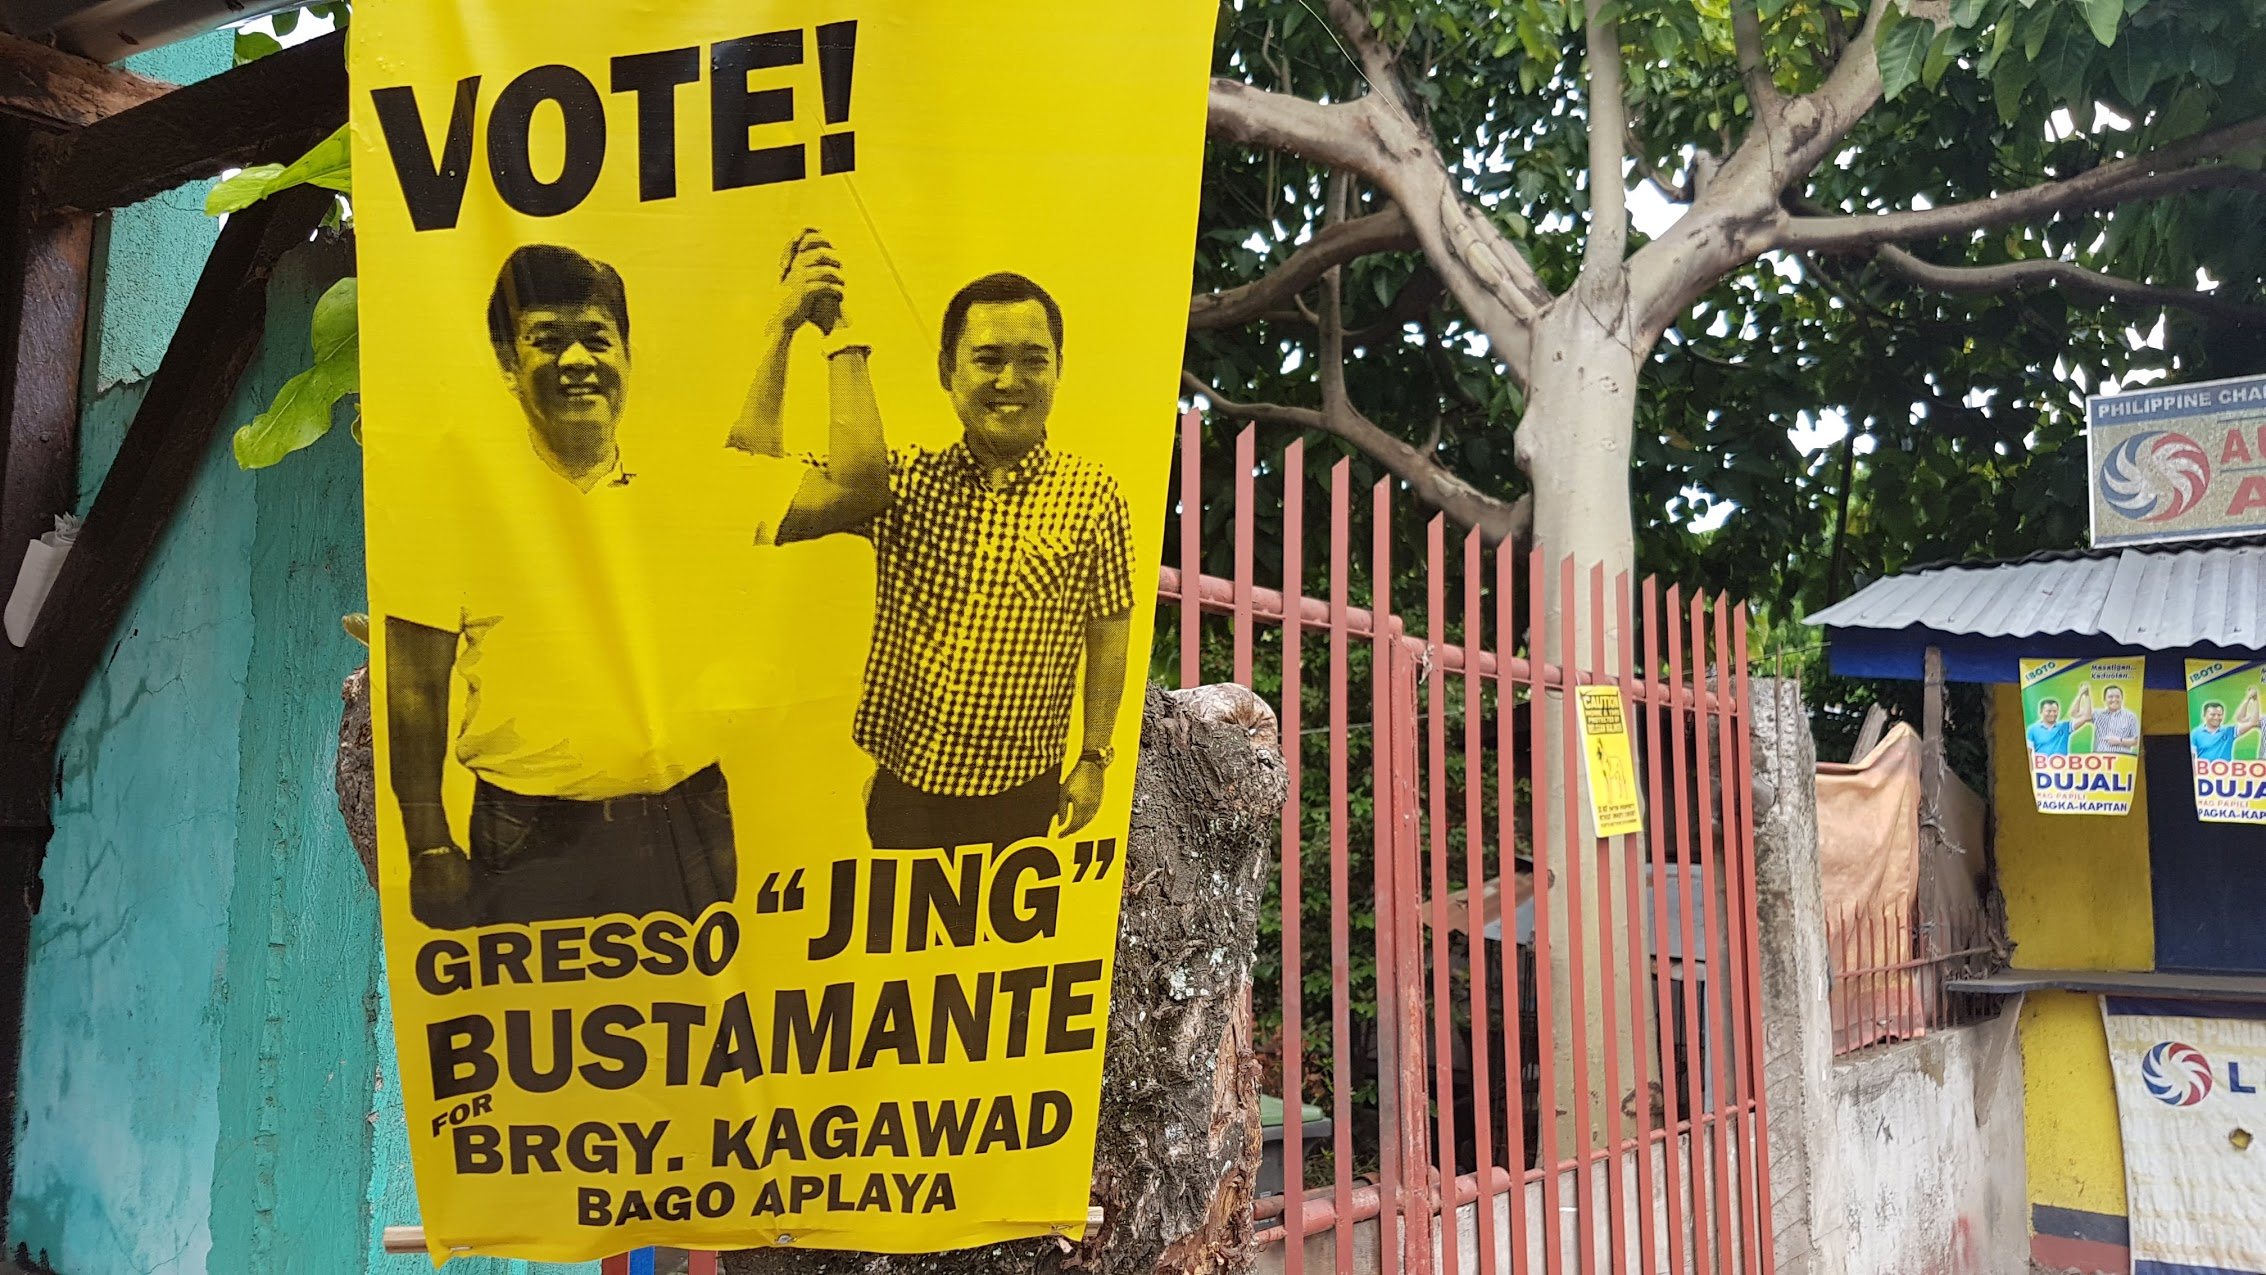 NOGRALES ENDORSEMENT? Bago Aplaya candidate Gresso 'Jing' Bustamante  shown with PBA Partylist Representative Jericho Nograles in his campaign posters. Photo by Mick Basa/Rappler